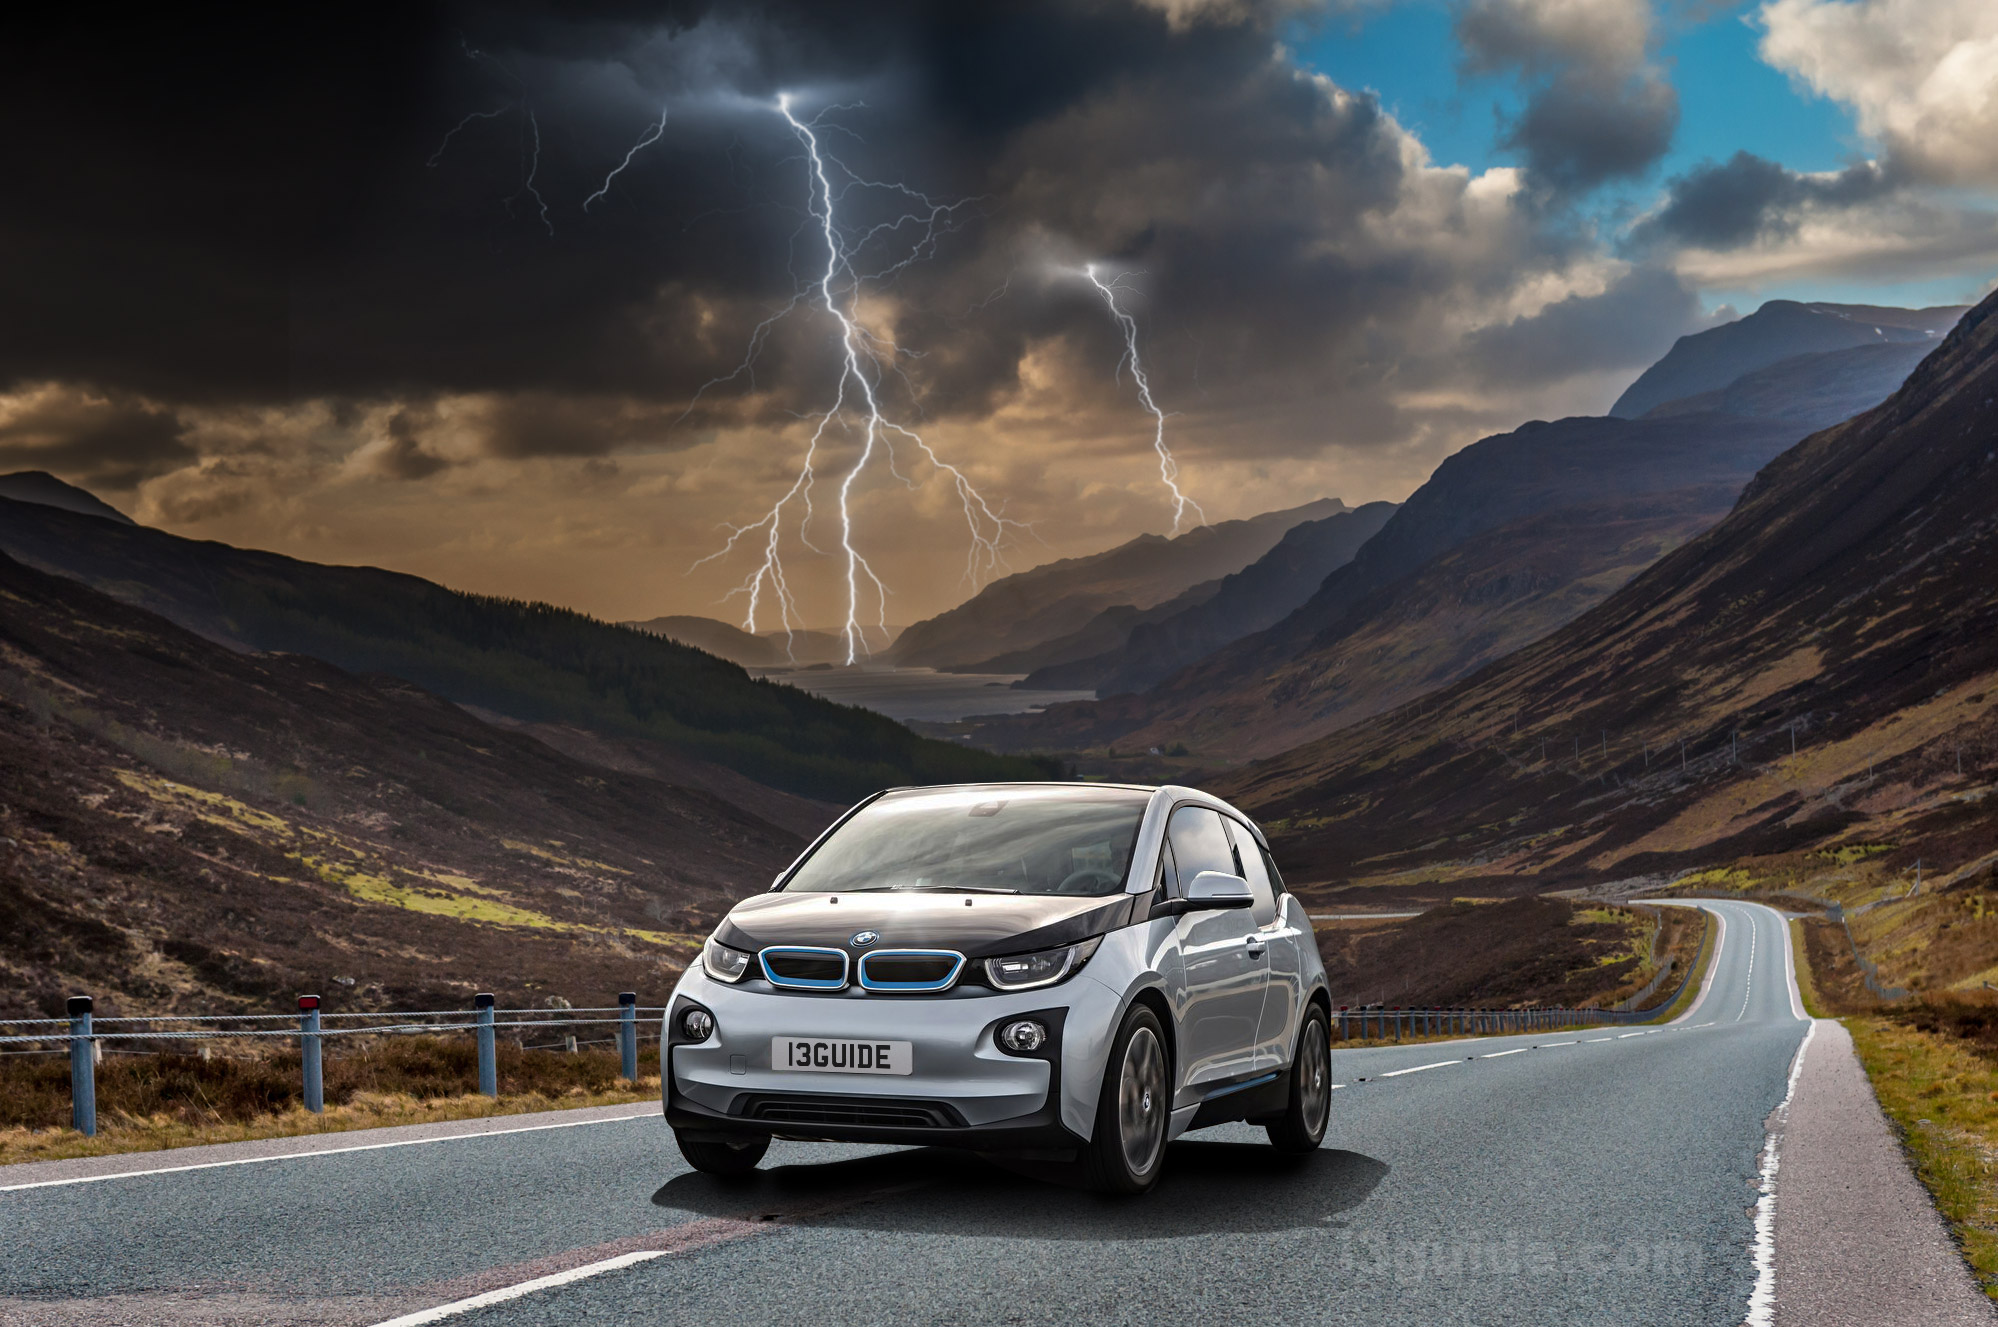 Charging your BMW during a lightning storm